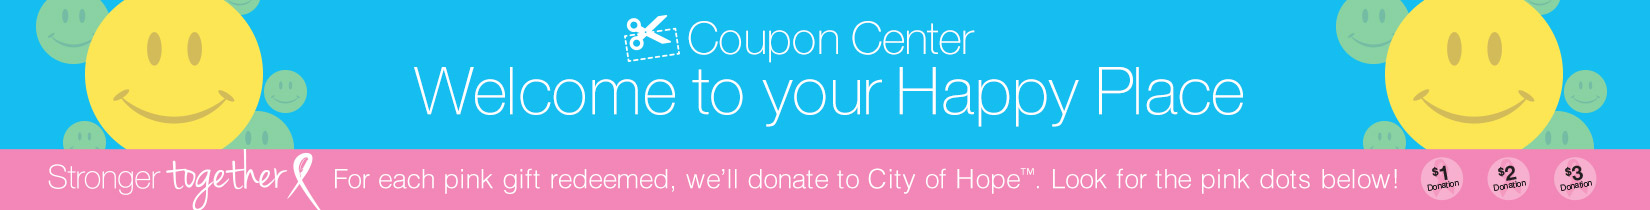 coupon center banner